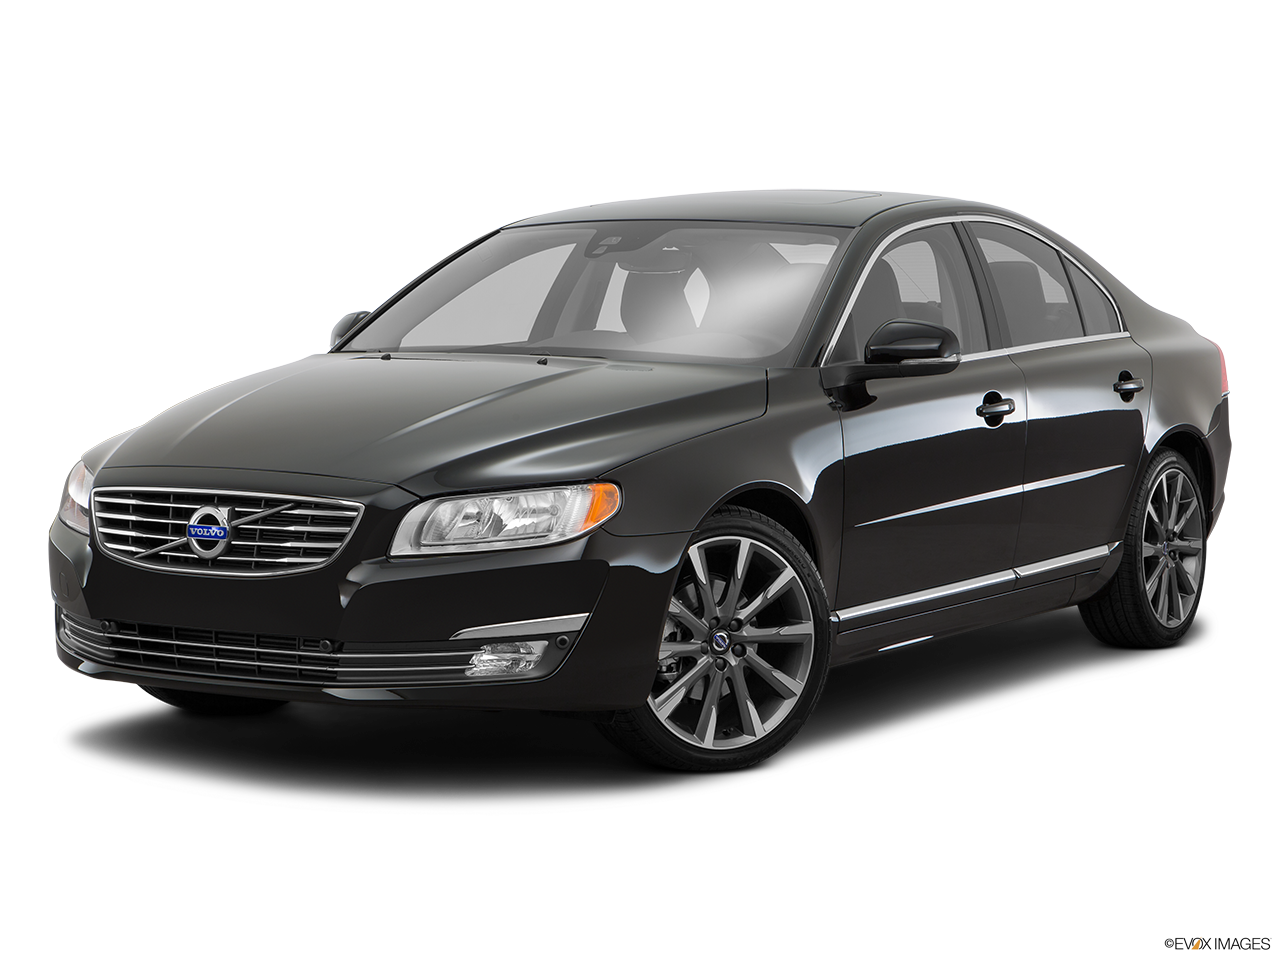 2016 volvo s80 dealer serving los angeles galpin volvo. Black Bedroom Furniture Sets. Home Design Ideas